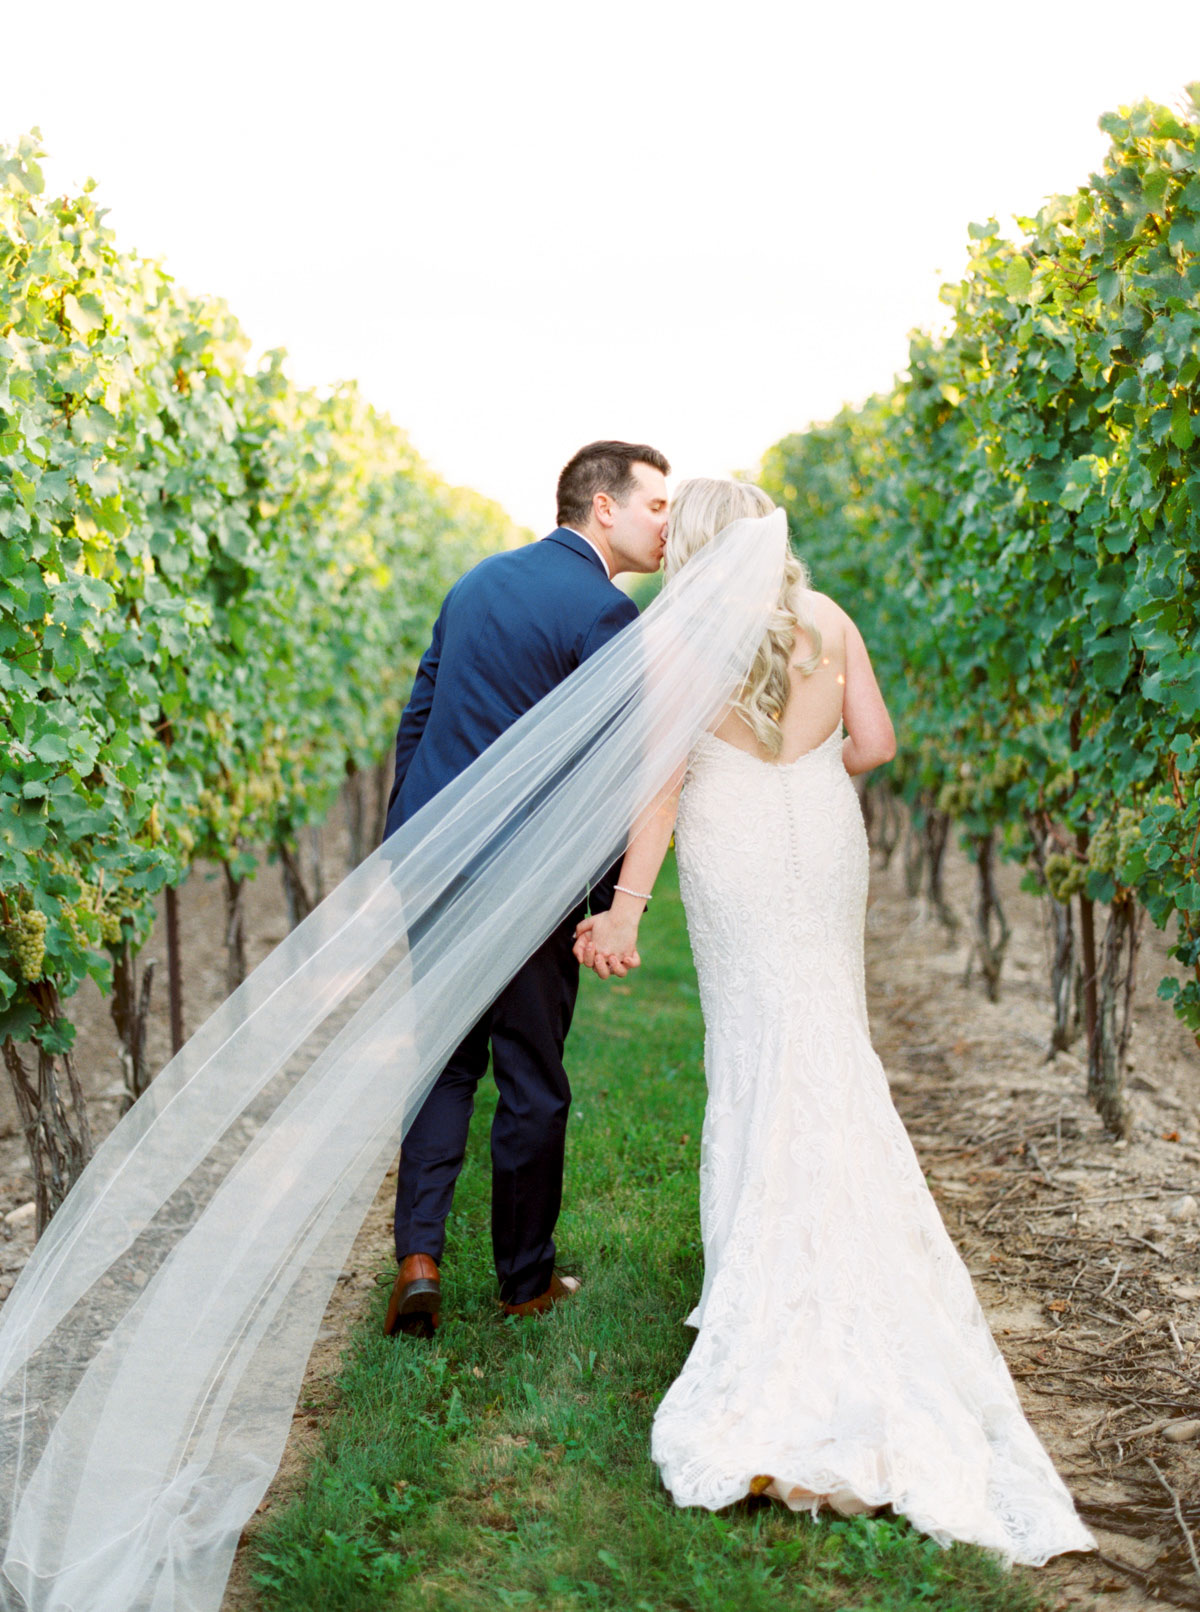 vineyard-bride-kayla-yestal-outdoor-summer-wedding-honsberger-estate-winery-niagara-toronto-vendor-0044.jpg